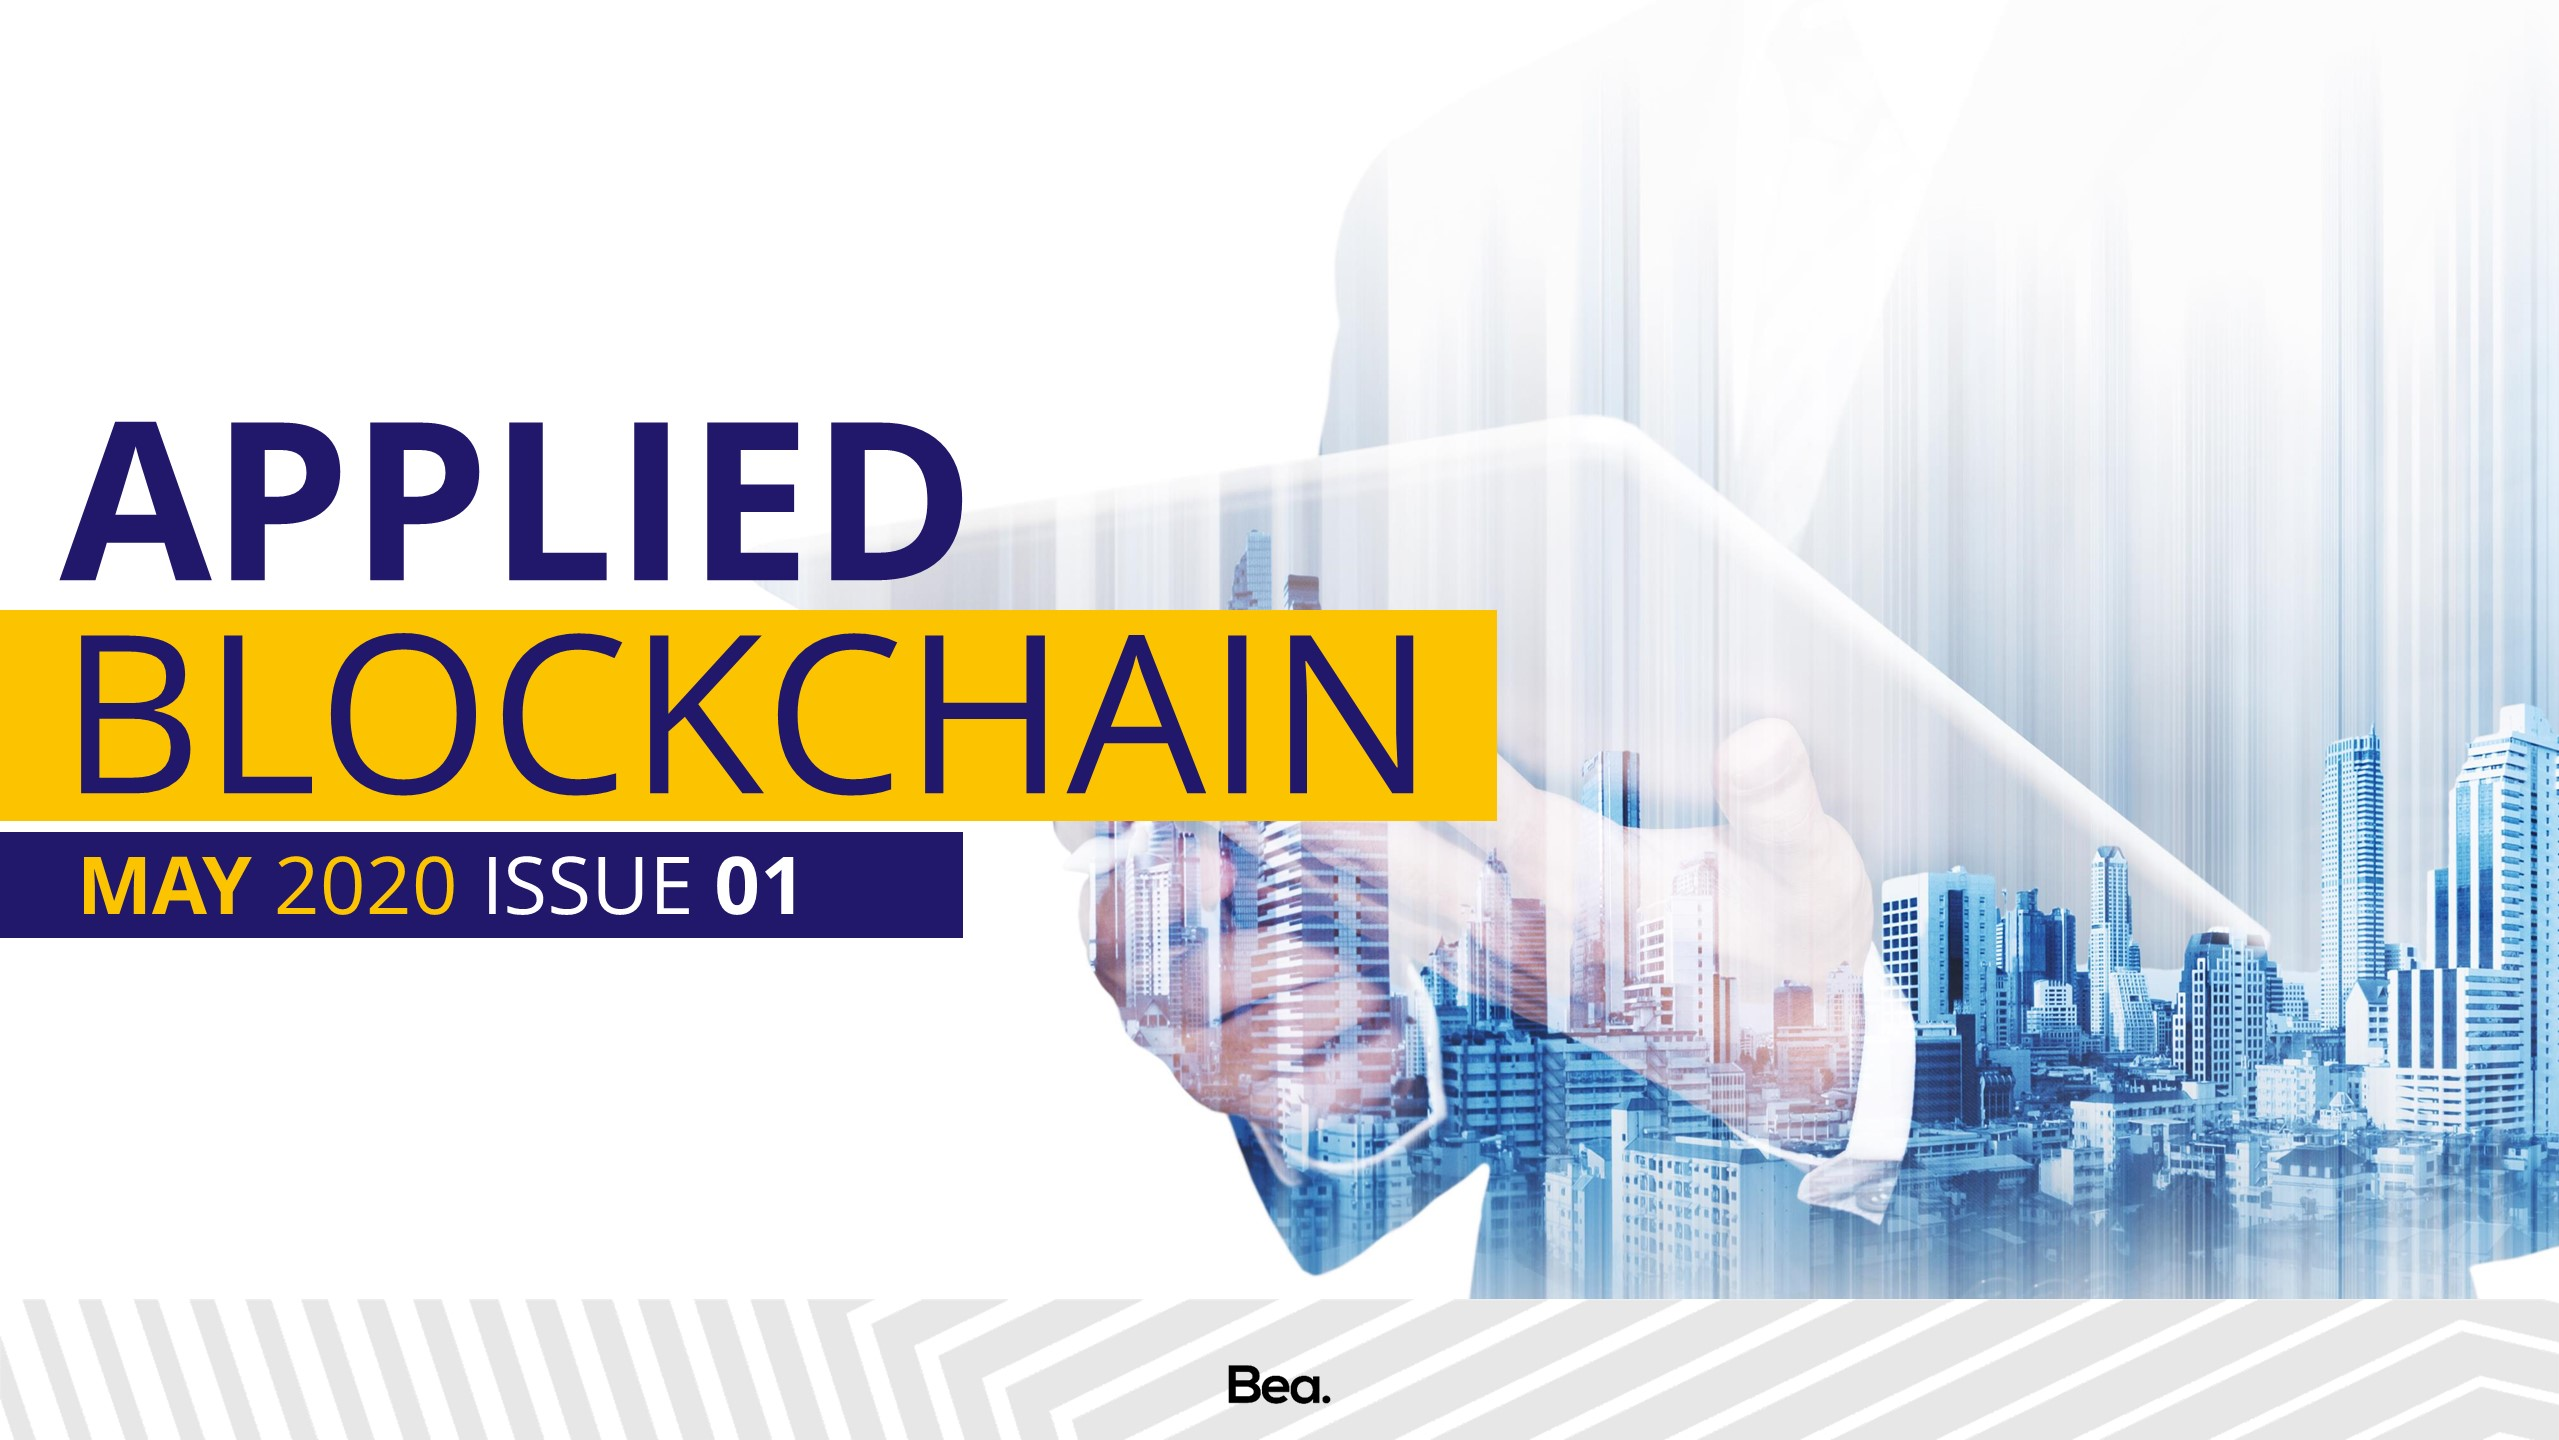 Applied-Blockchain-May-2020-Issue-01